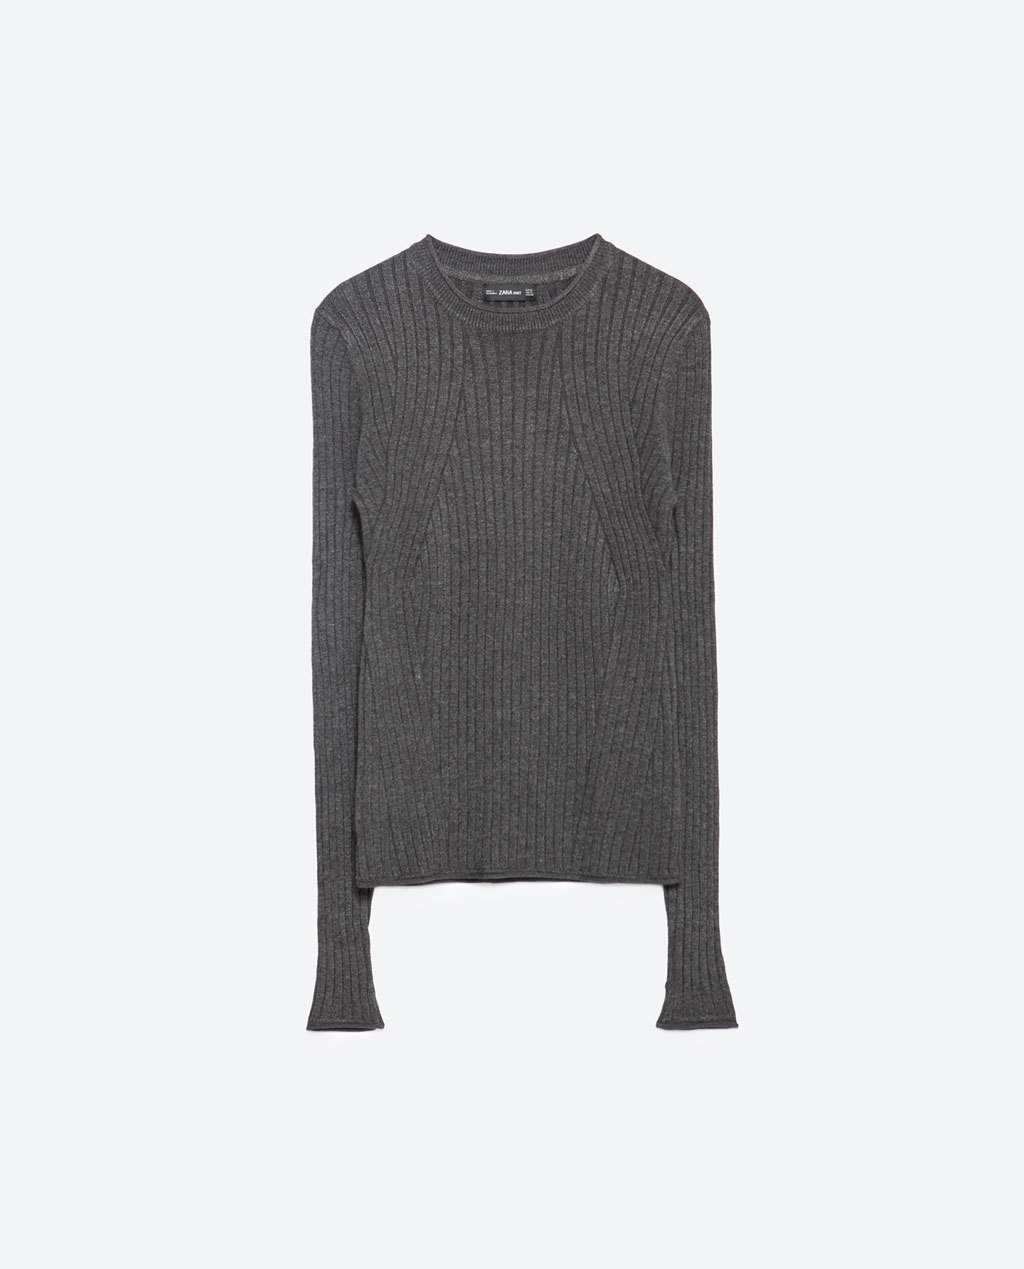 Ribbed Jersey - pattern: plain; style: standard; predominant colour: light grey; occasions: casual, creative work; length: standard; fit: standard fit; neckline: crew; sleeve length: long sleeve; sleeve style: standard; texture group: knits/crochet; pattern type: knitted - fine stitch; season: a/w 2015; wardrobe: basic